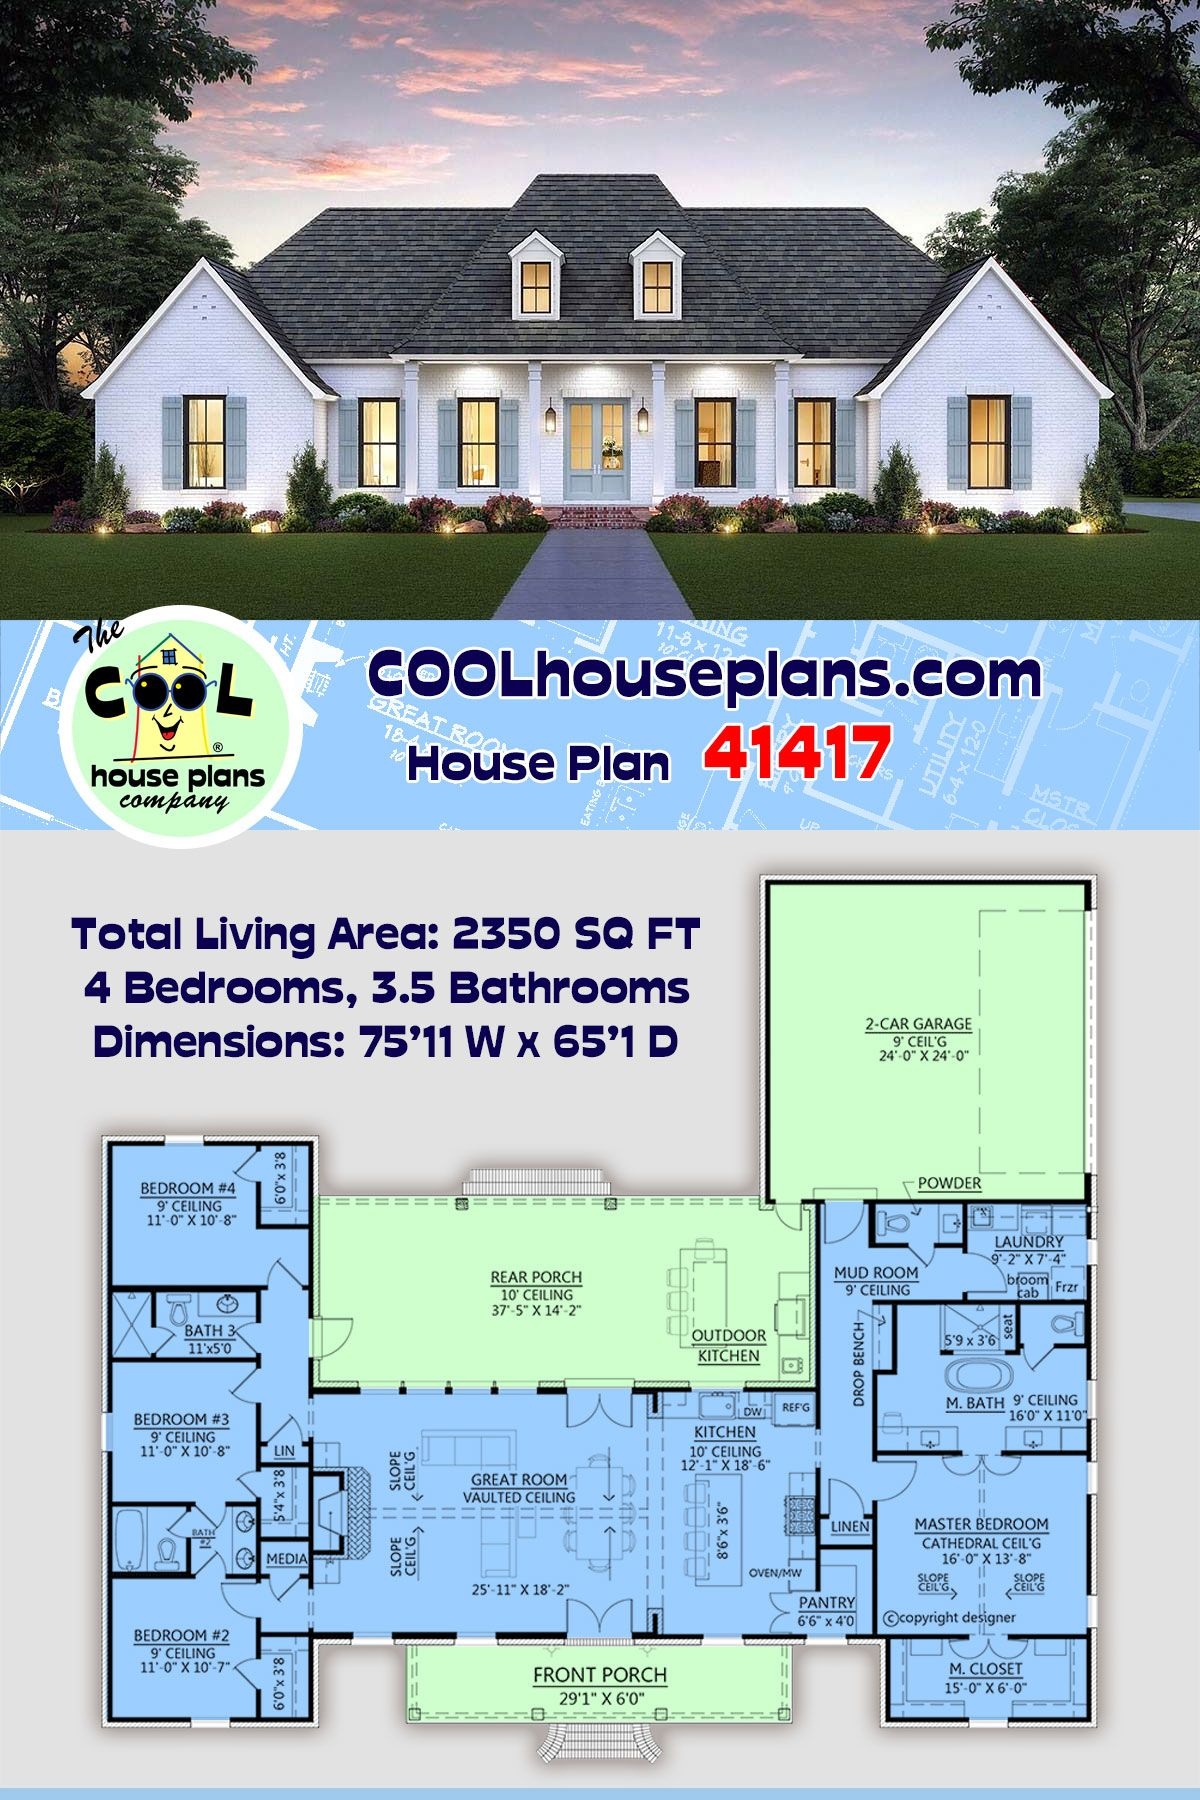 Southern Style House Plan 41417 With 4 Bed 4 Bath 2 Car Garage House Plans House Plans Farmhouse Modern Farmhouse Plans